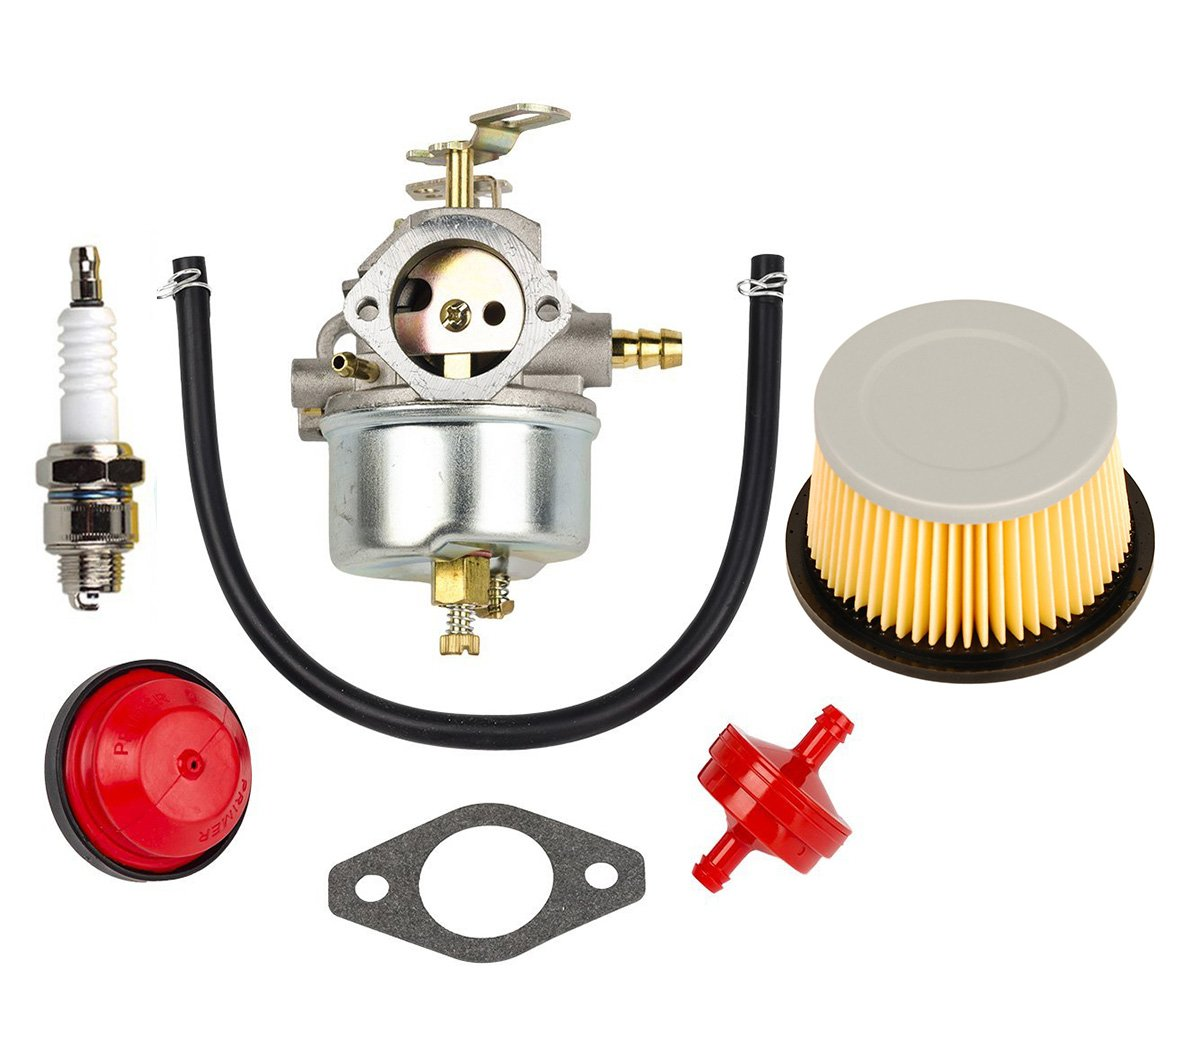 Cheap Fuel Air Filter Find Deals On Line At Alibabacom Airdog Filters Get Quotations Hifrom 632334 Carburetor Carb Kit With 30727 Primer Bulb For Tecumseh Hm70